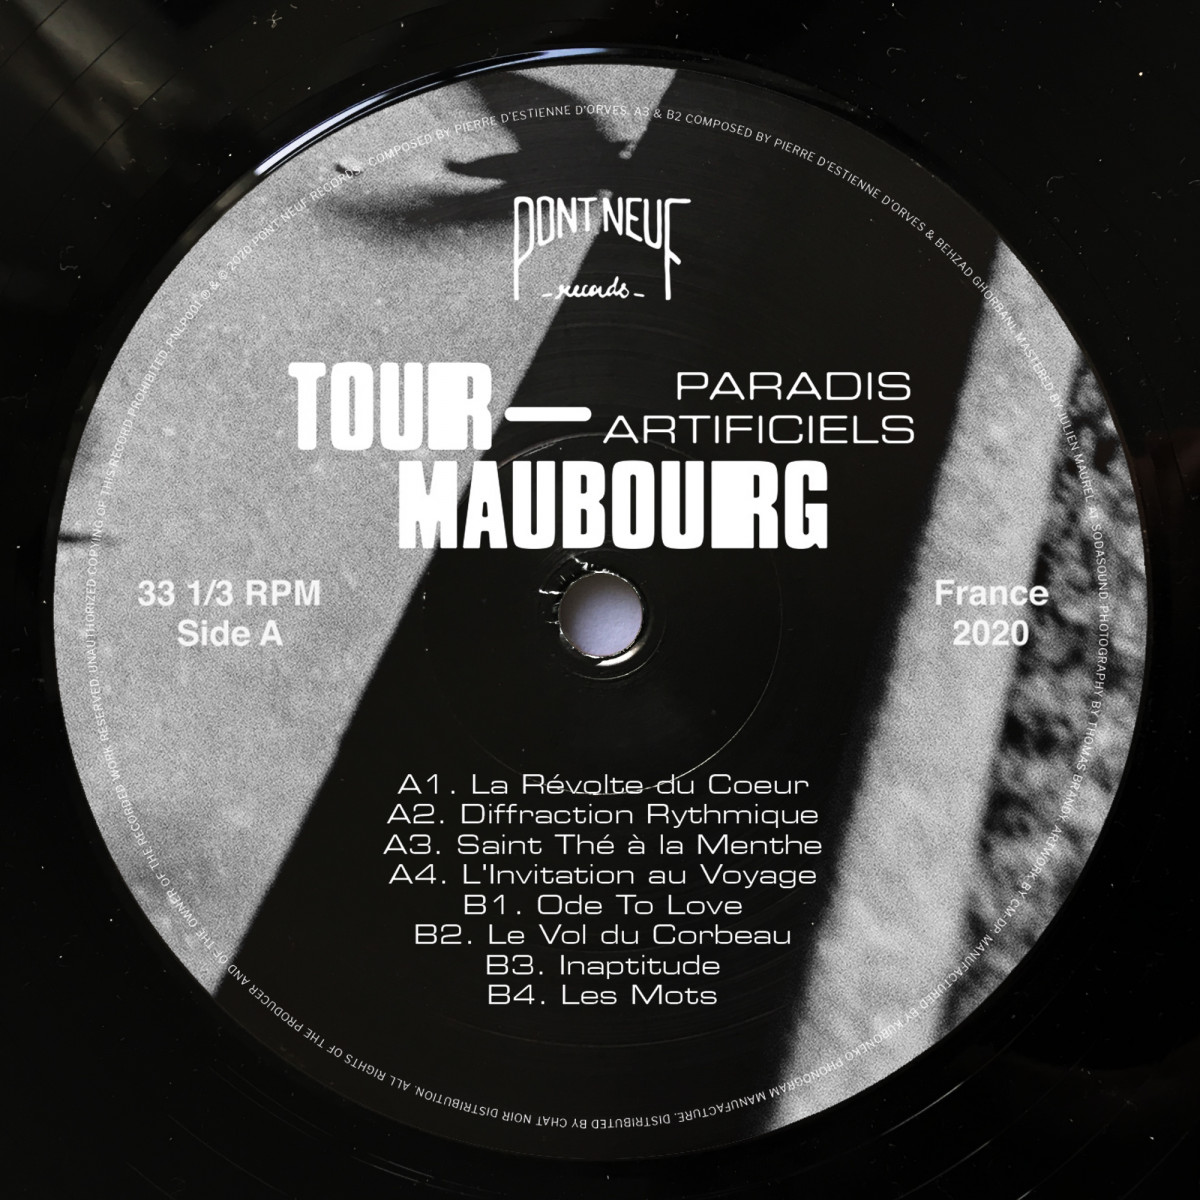 Tour-Maubourg - Paradis Artificiels